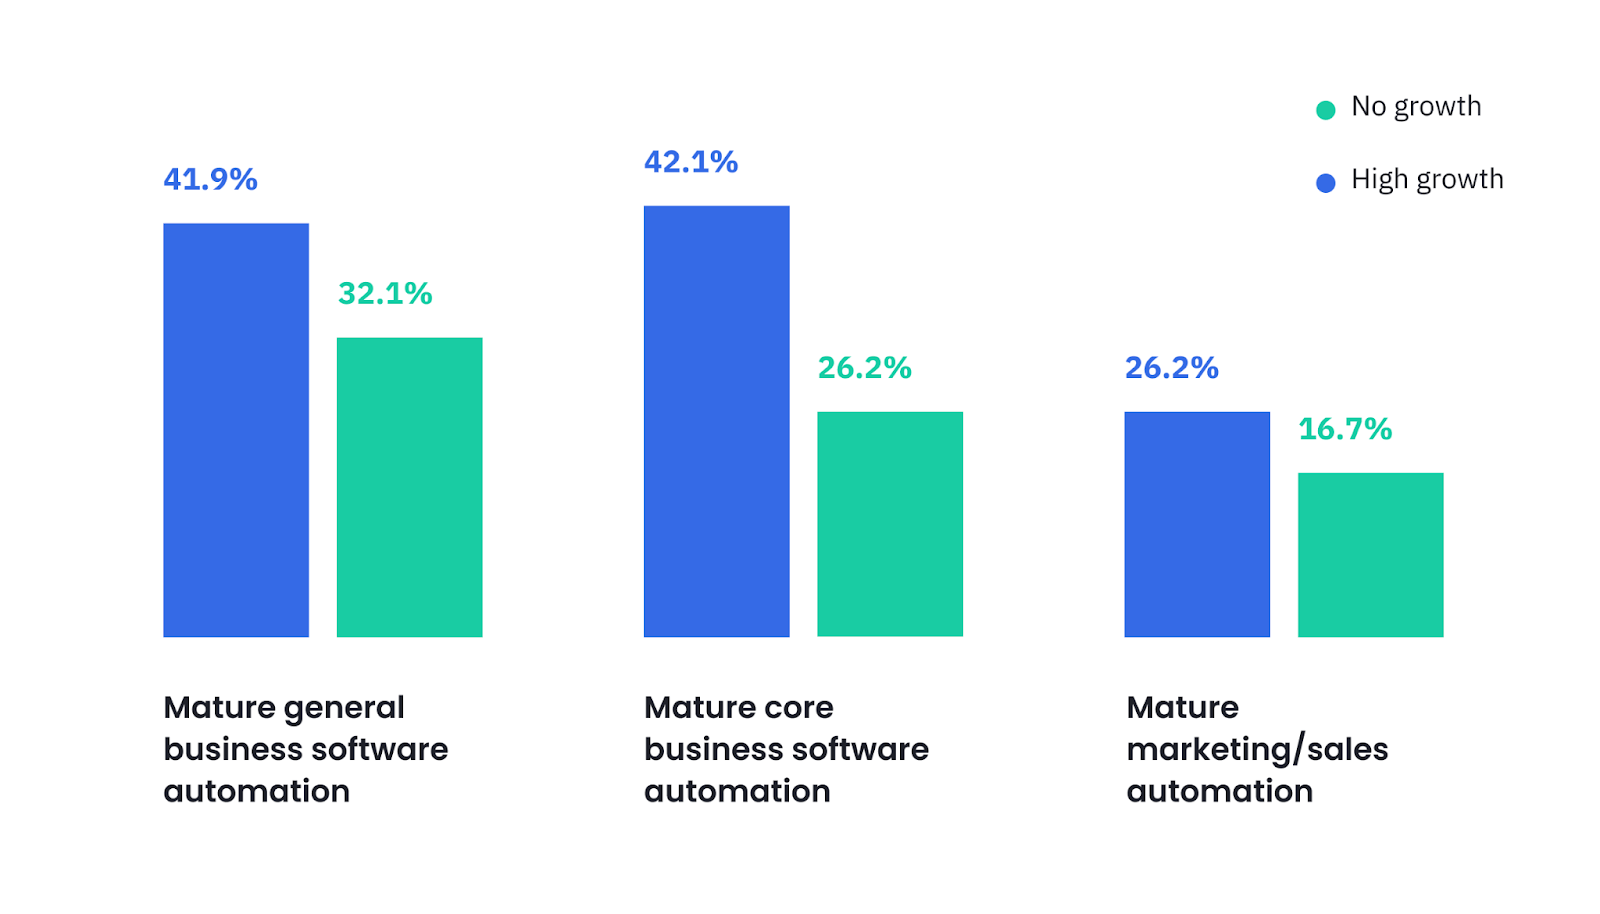 Hinge Marketing shows that high-growth businesses use more automation